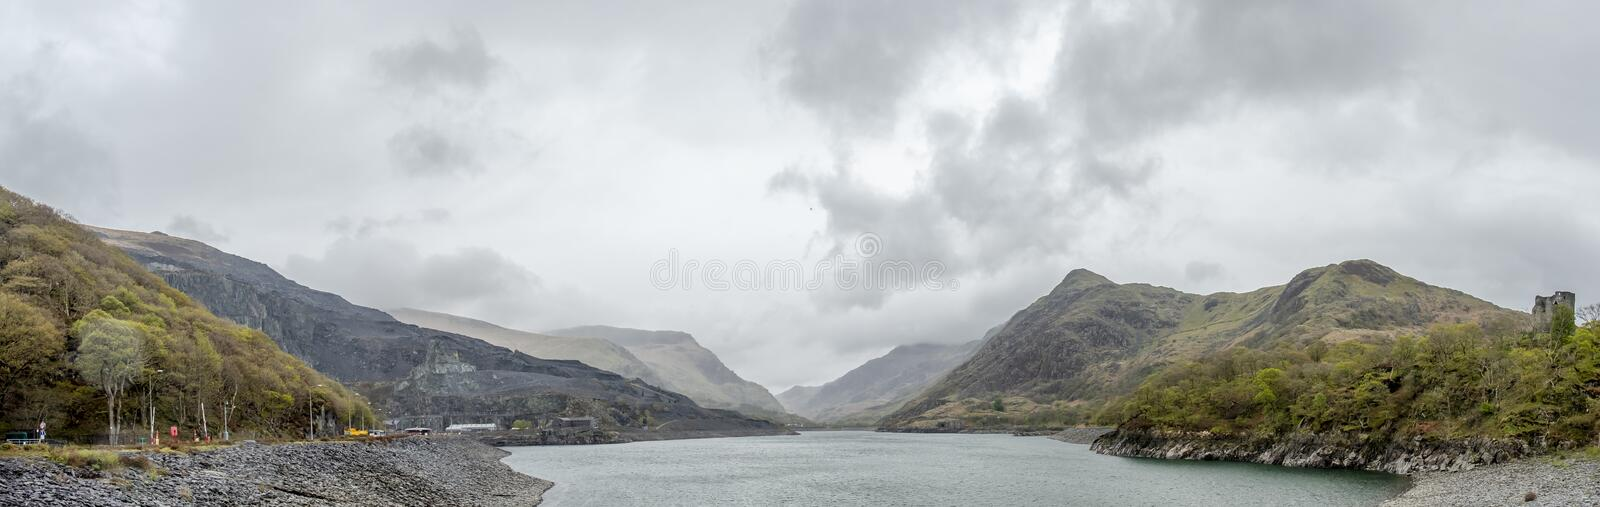 View over Llyn Peris to Snowdonia from Llanberis - Wales royalty free stock image